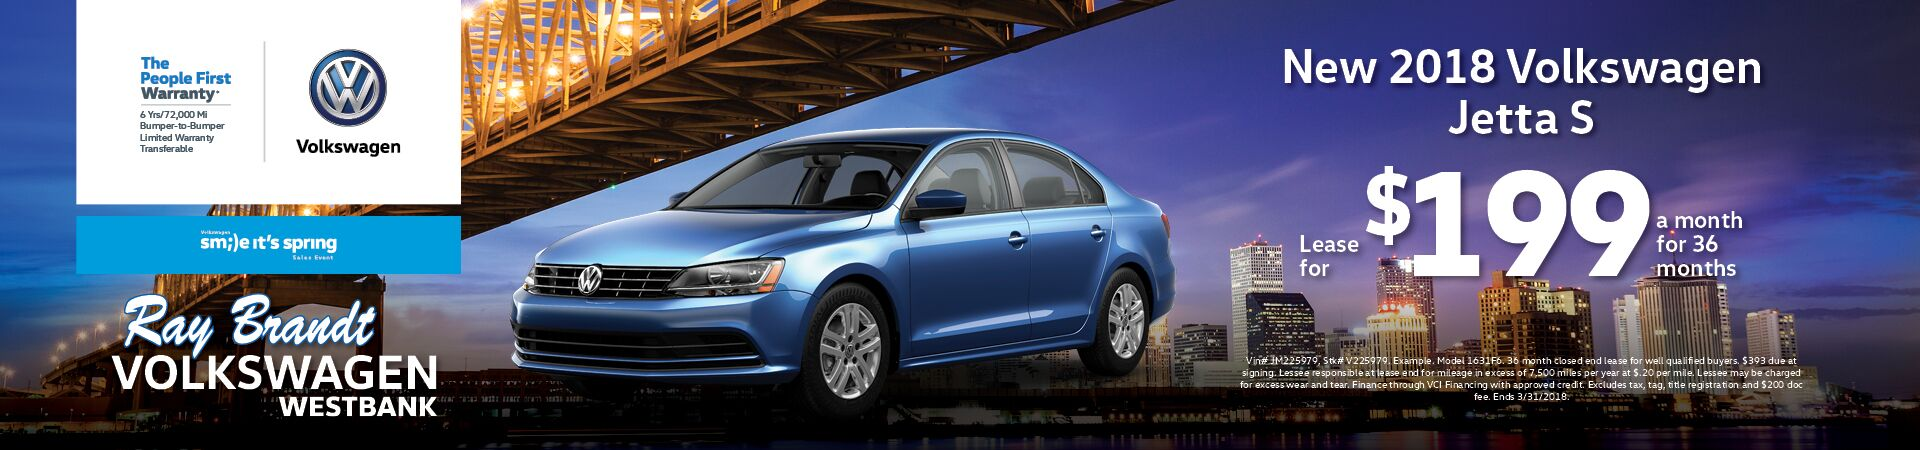 Volkswagen New and Used Car Specials in New Orleans